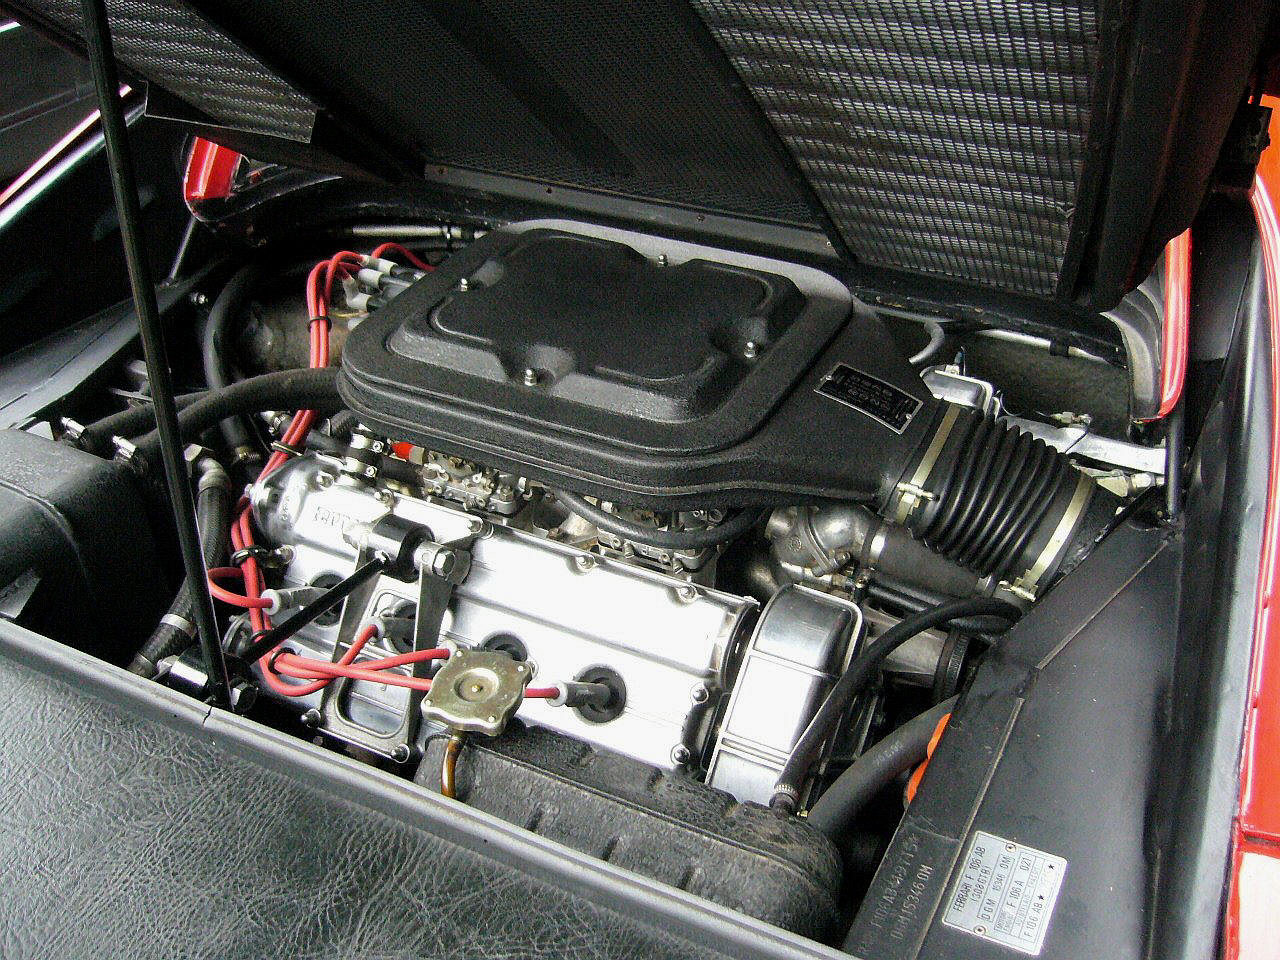 FERRARI 308 GT engine